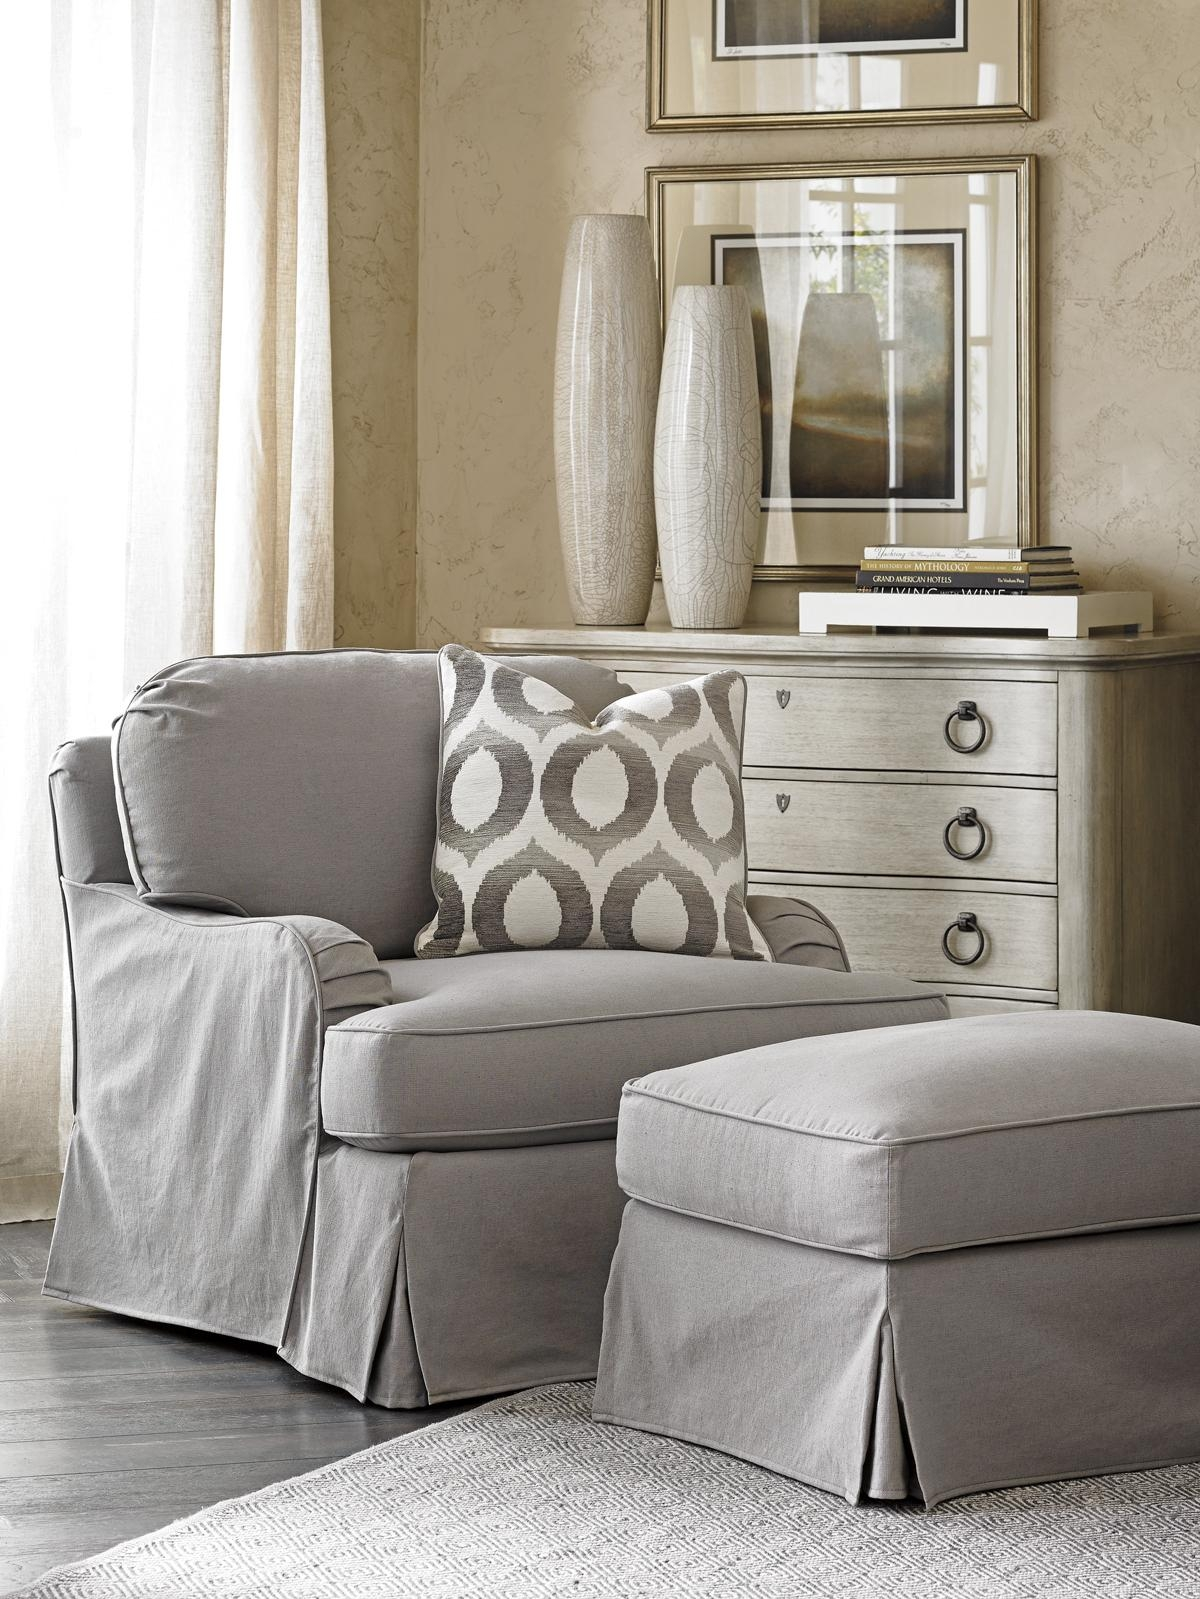 Oyster Bay Bridgeport Bachelors Chest | Lexington Home Brands For Bridgeport Sofas (Image 14 of 20)